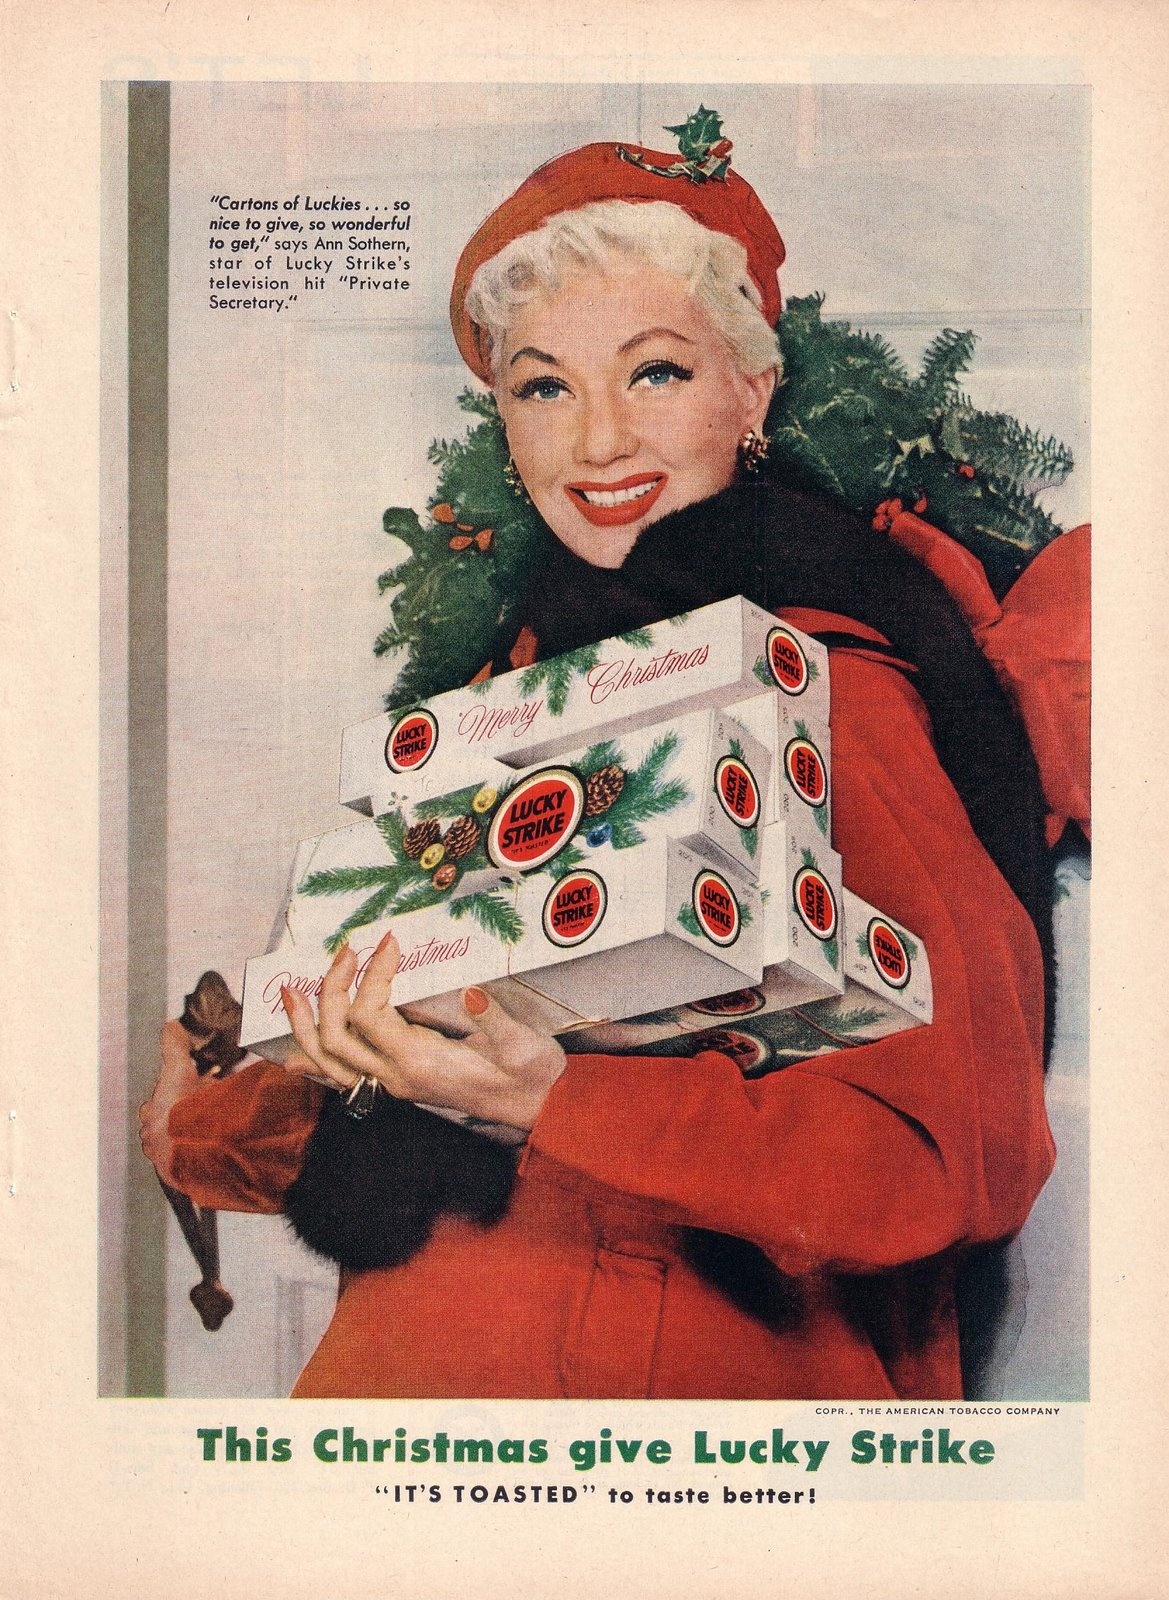 Ann Sothern, giving out cartons of Luckies for Christmas